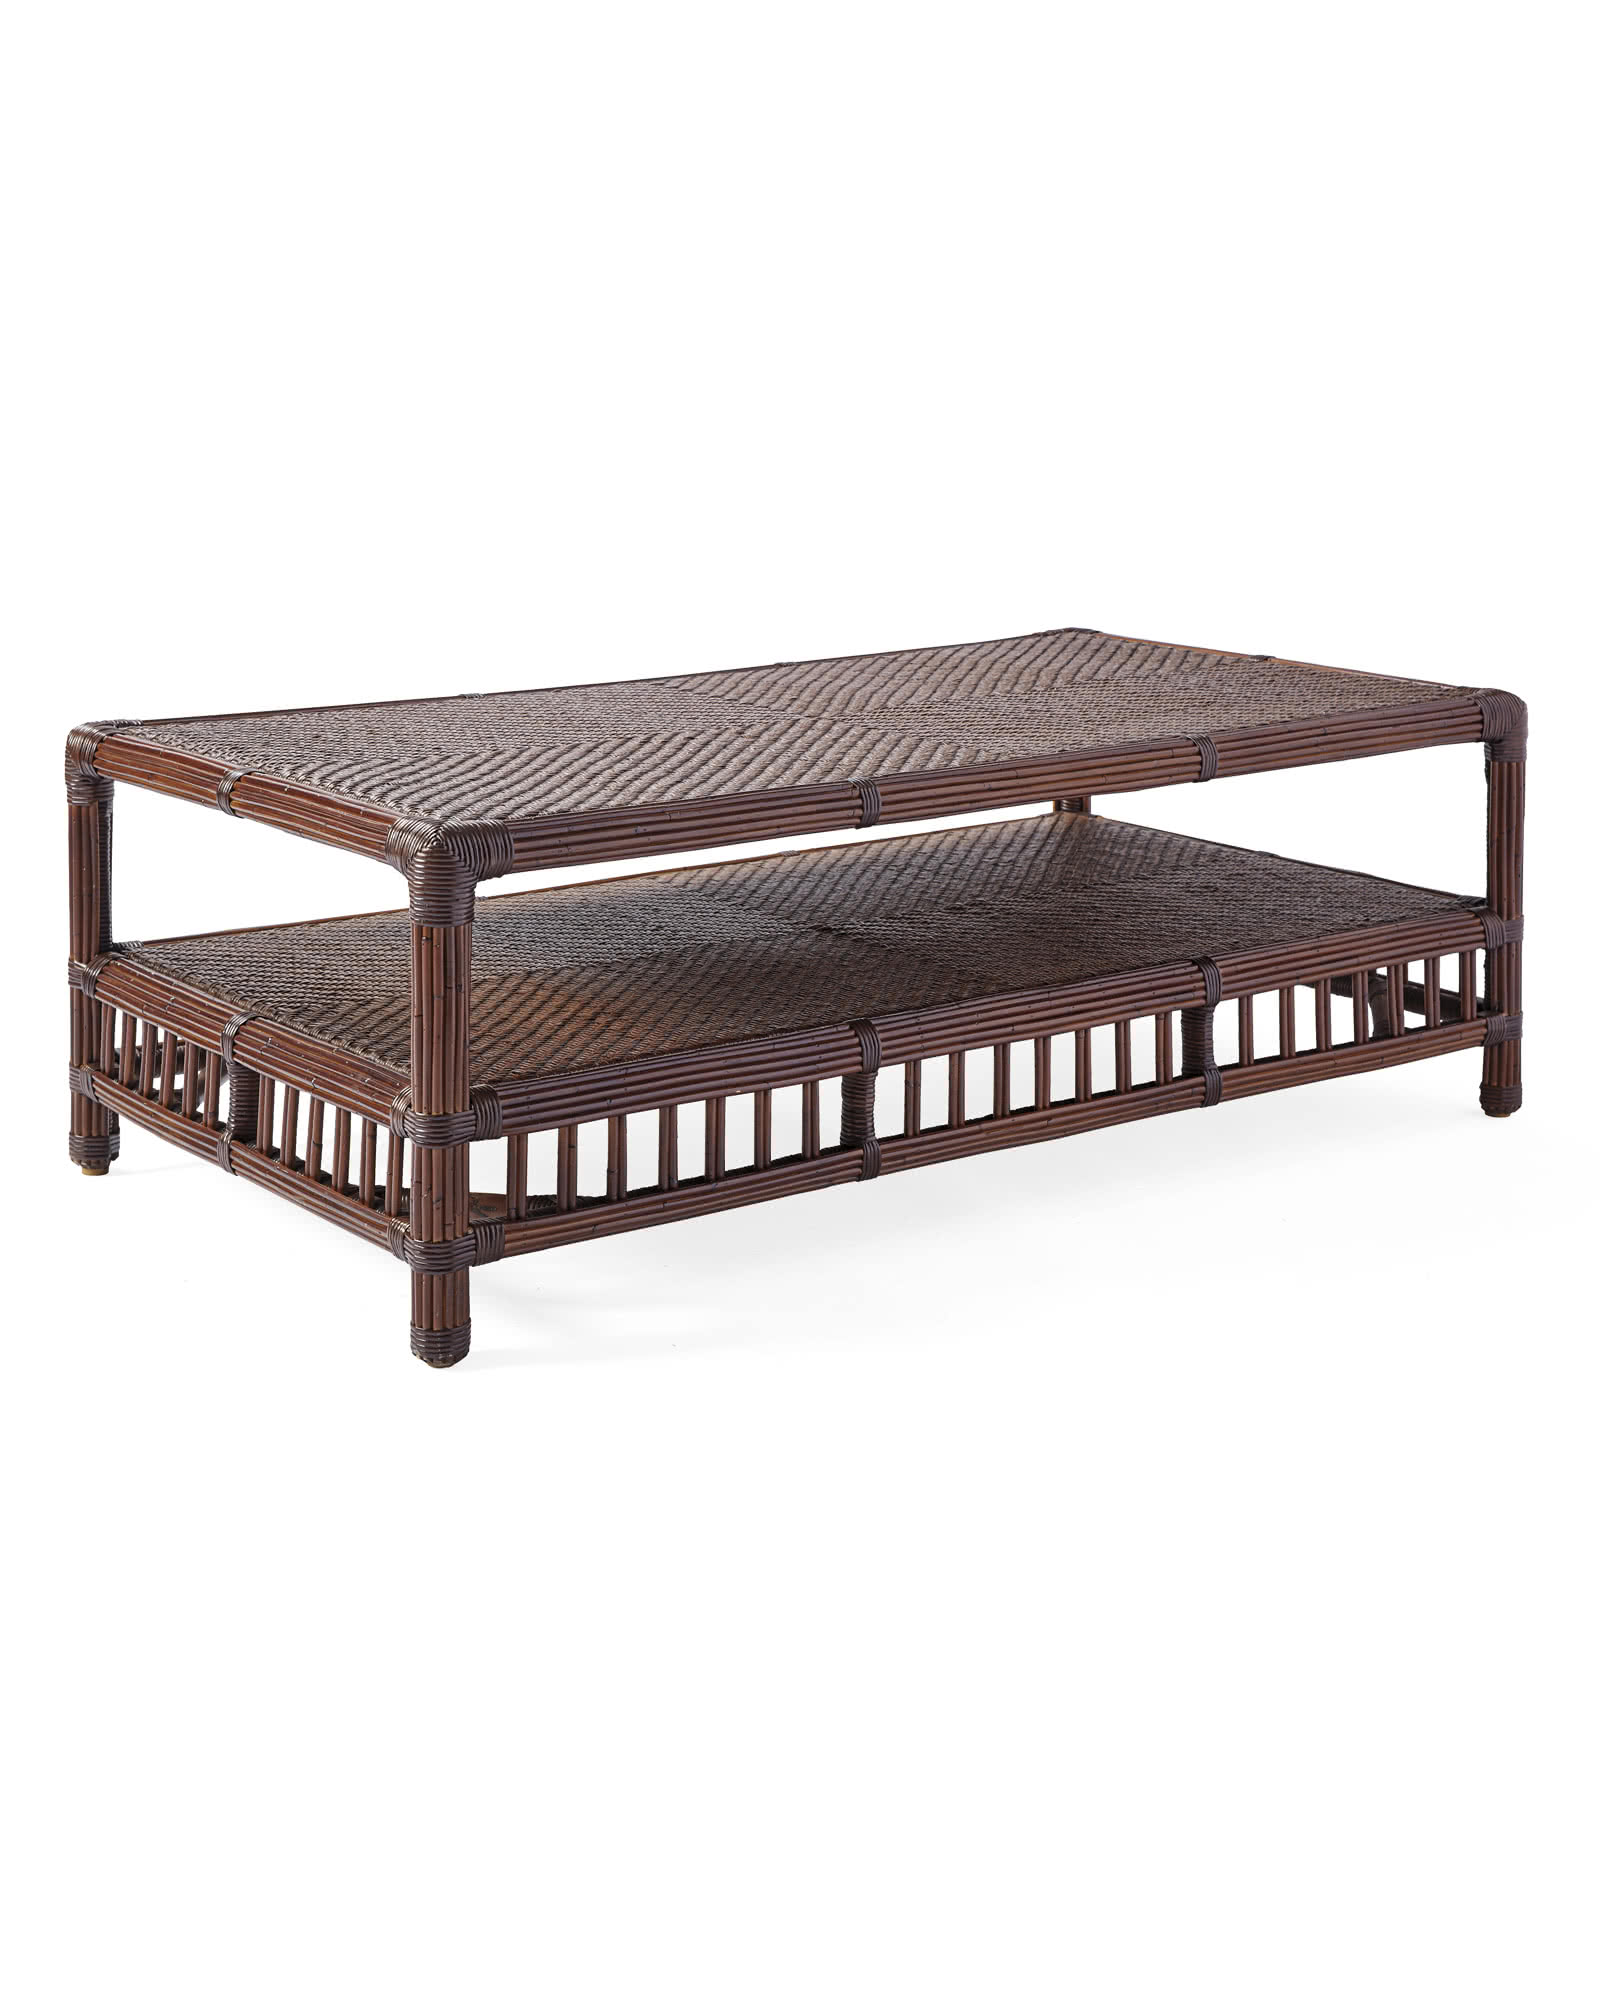 Bungalow Coffee Table,